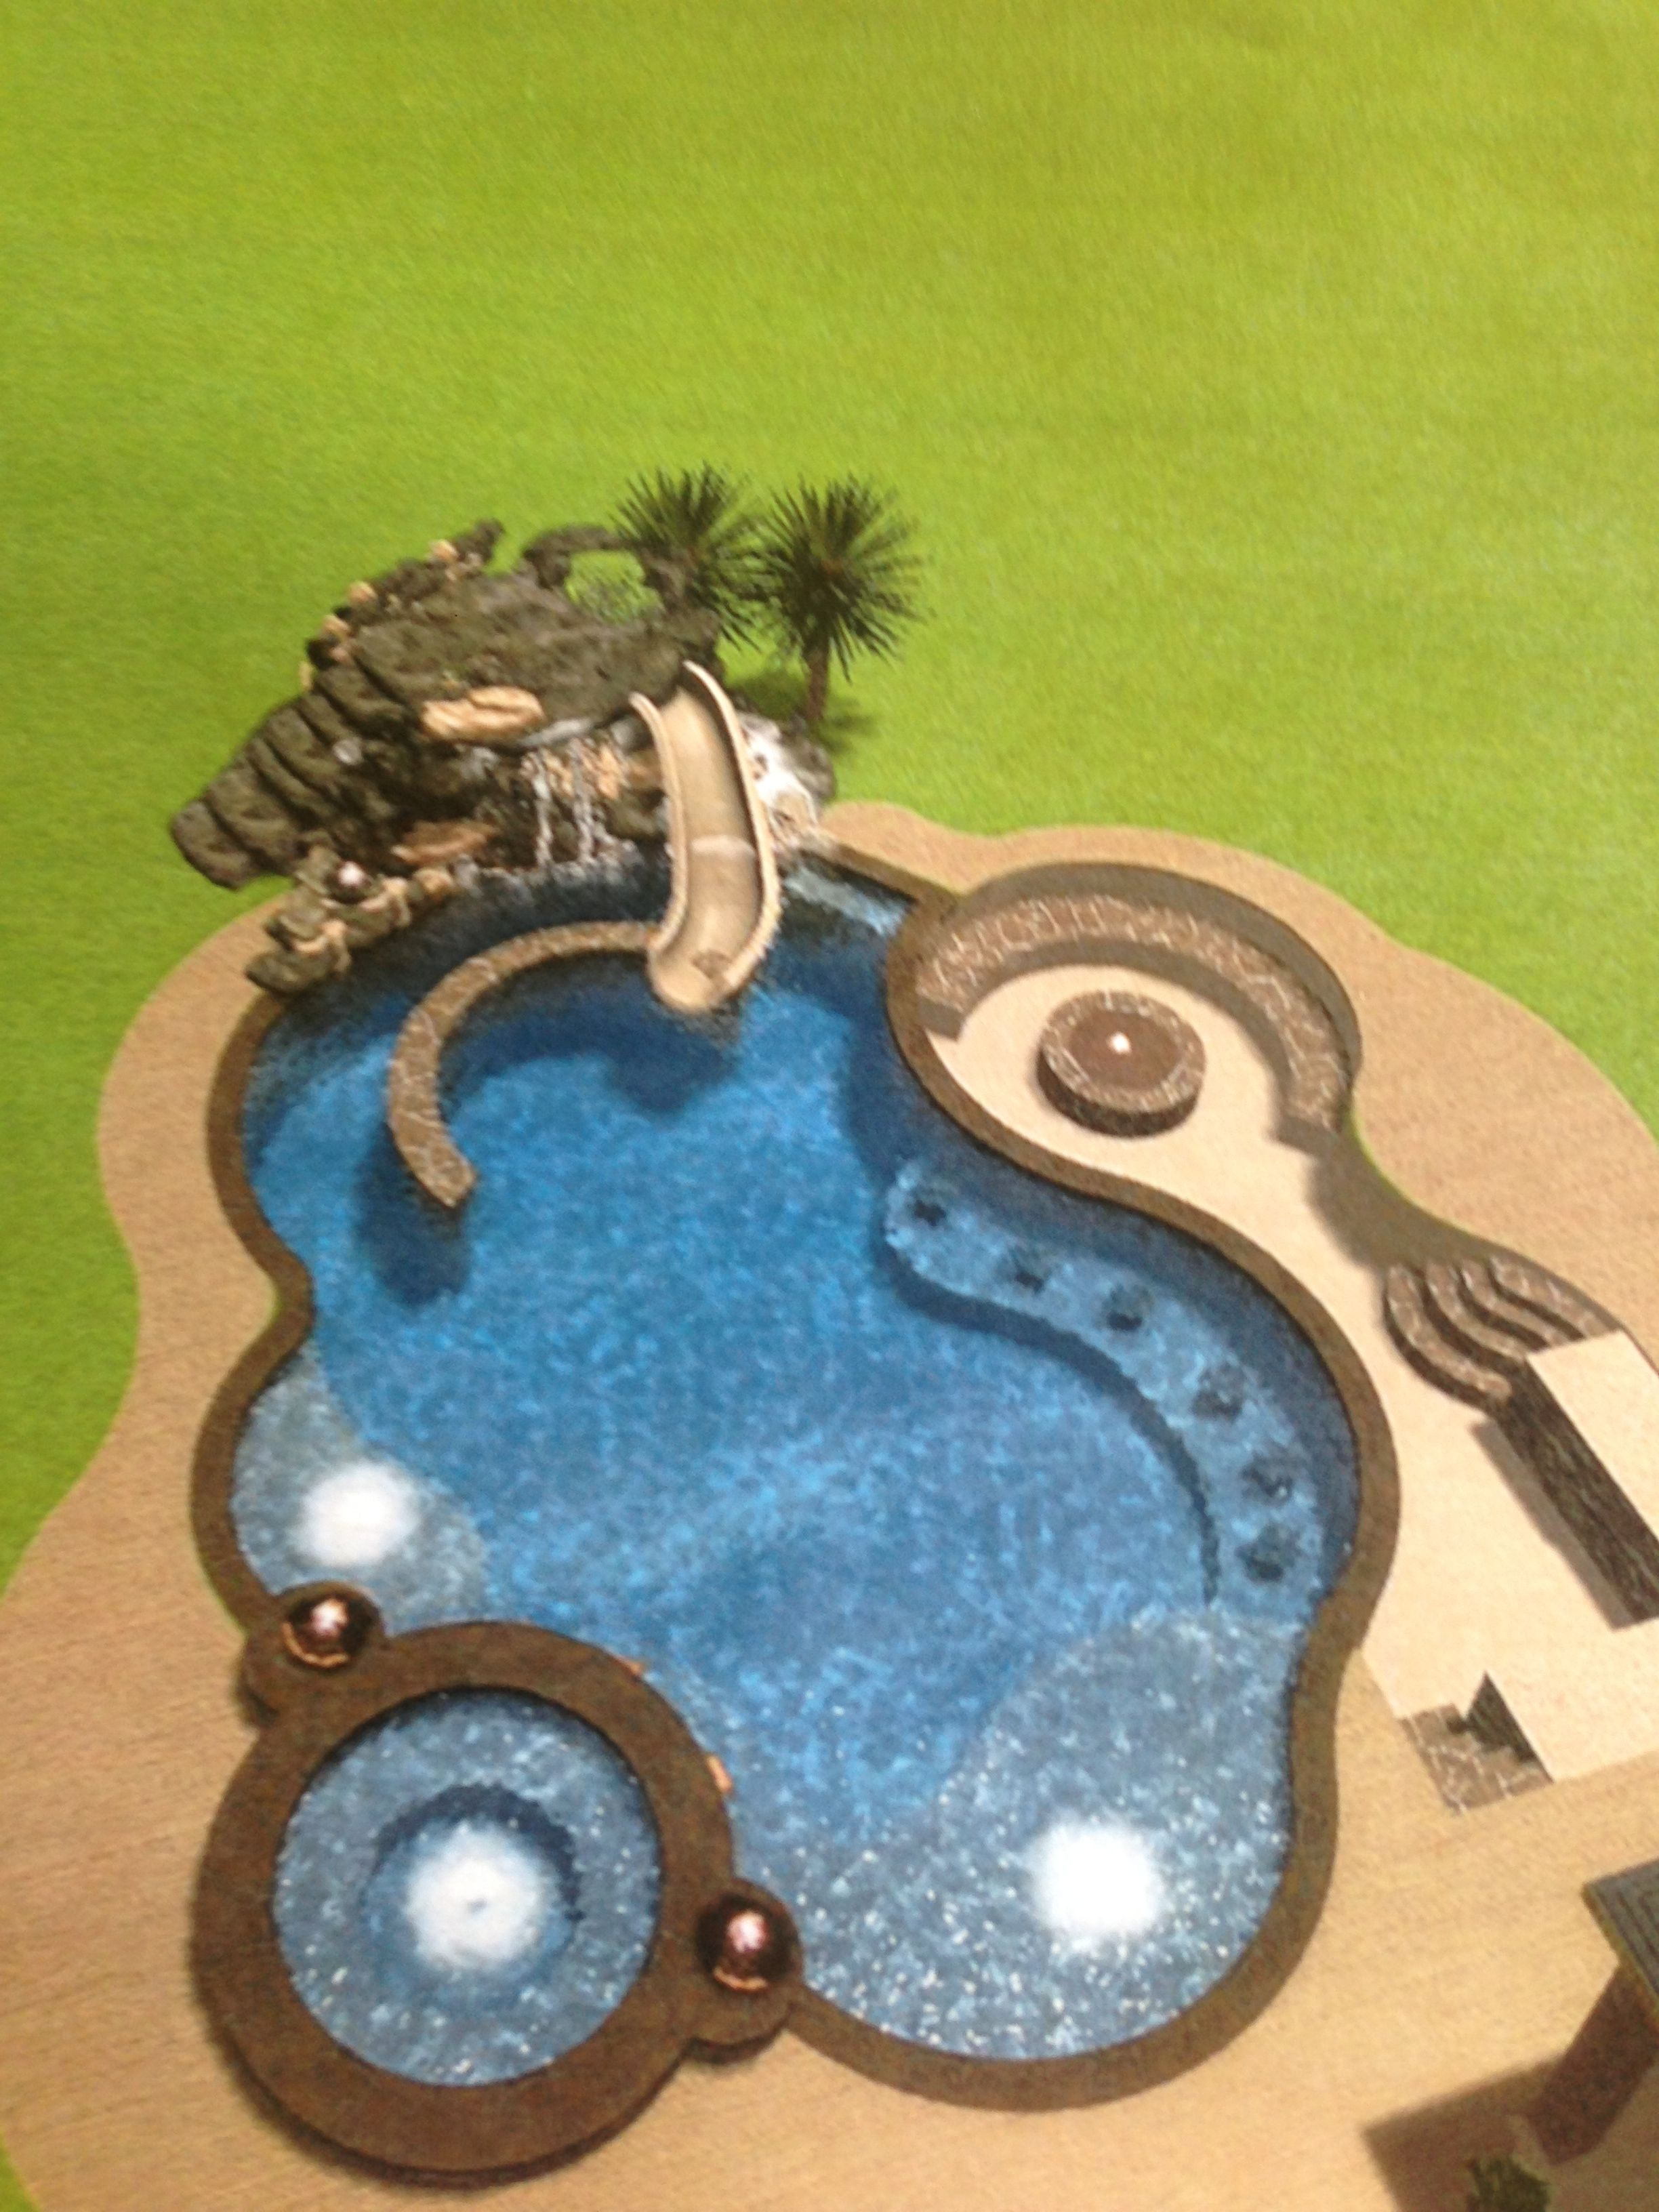 Inground Pool With Fire Pit : inground, Firepit, Worked, Curve, Design...hot, Tub...slide...beach, Entry...what, Could, Amazing, Swimming, Pools,, Backyard, Designs,